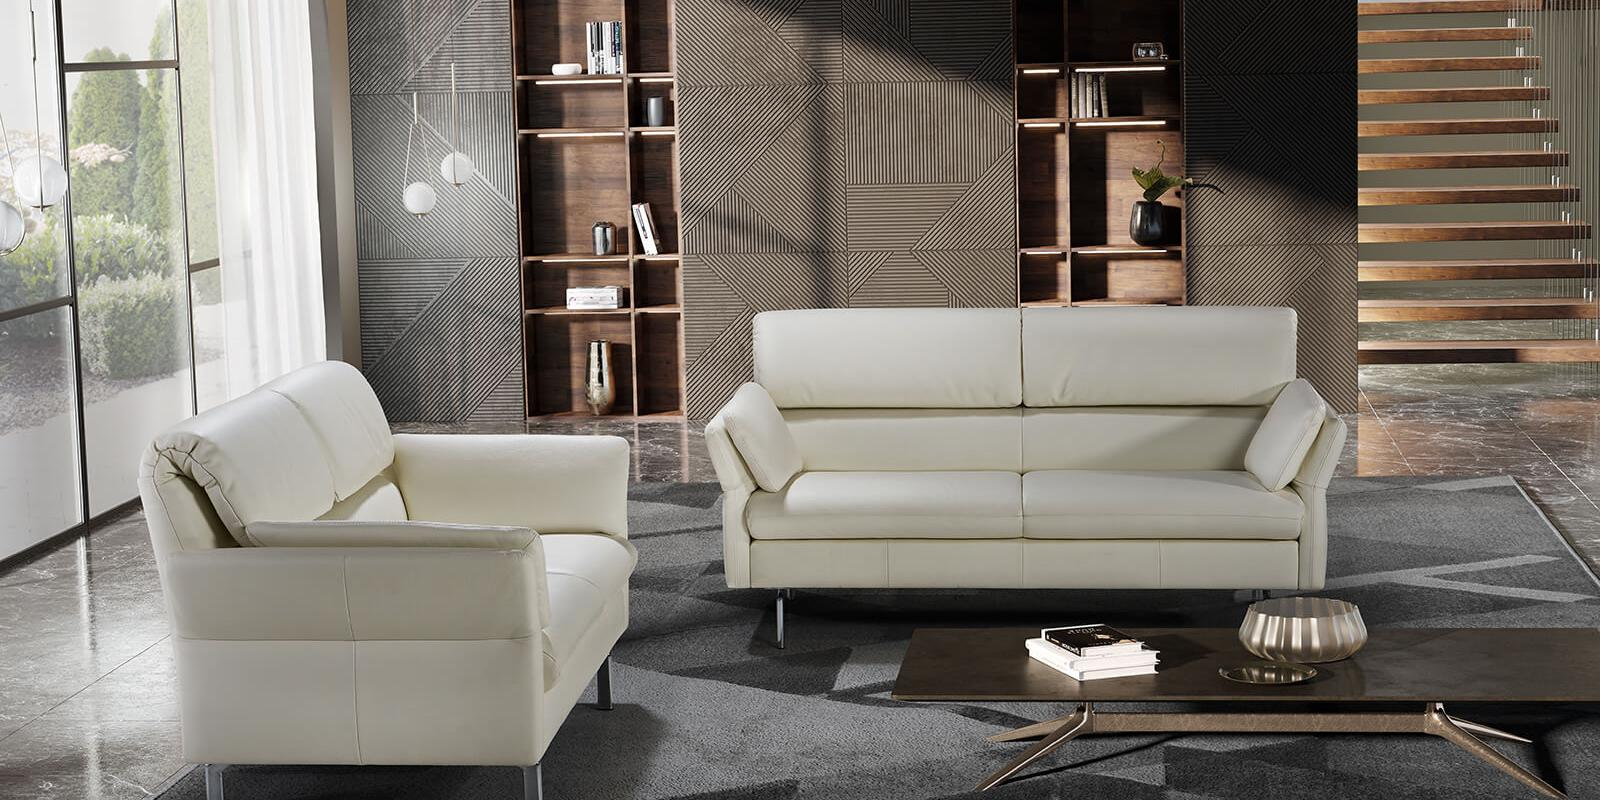 horst collection avegno sofa design moebel weiss leder